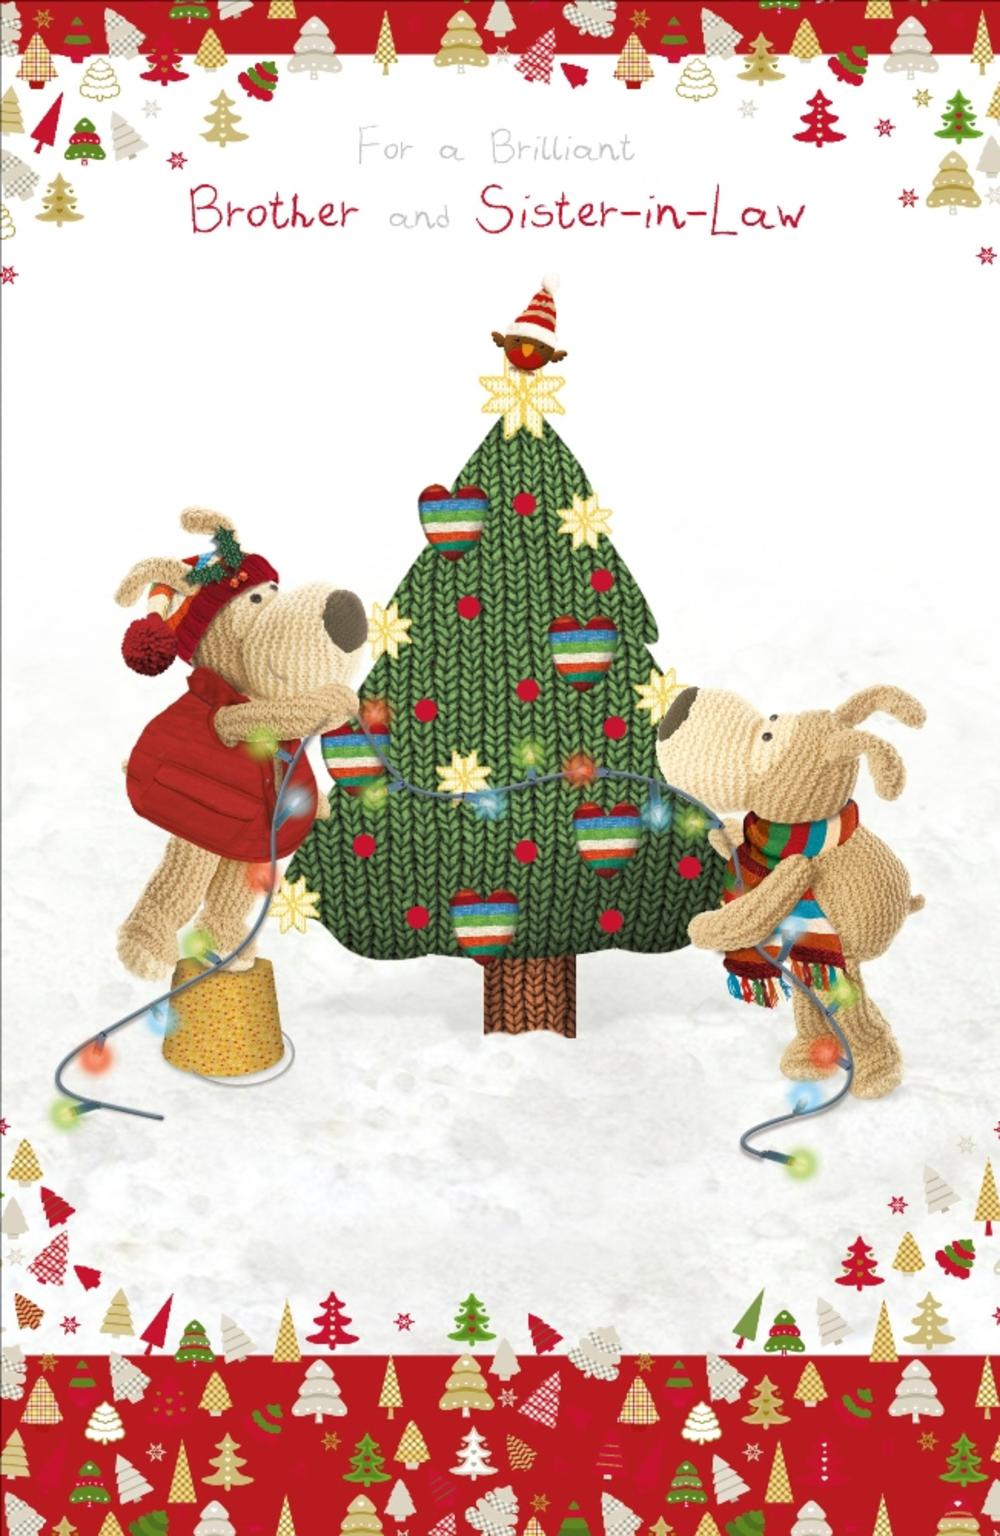 Boofle brother sister in law christmas greeting card cards boofle brother sister in law christmas greeting card m4hsunfo